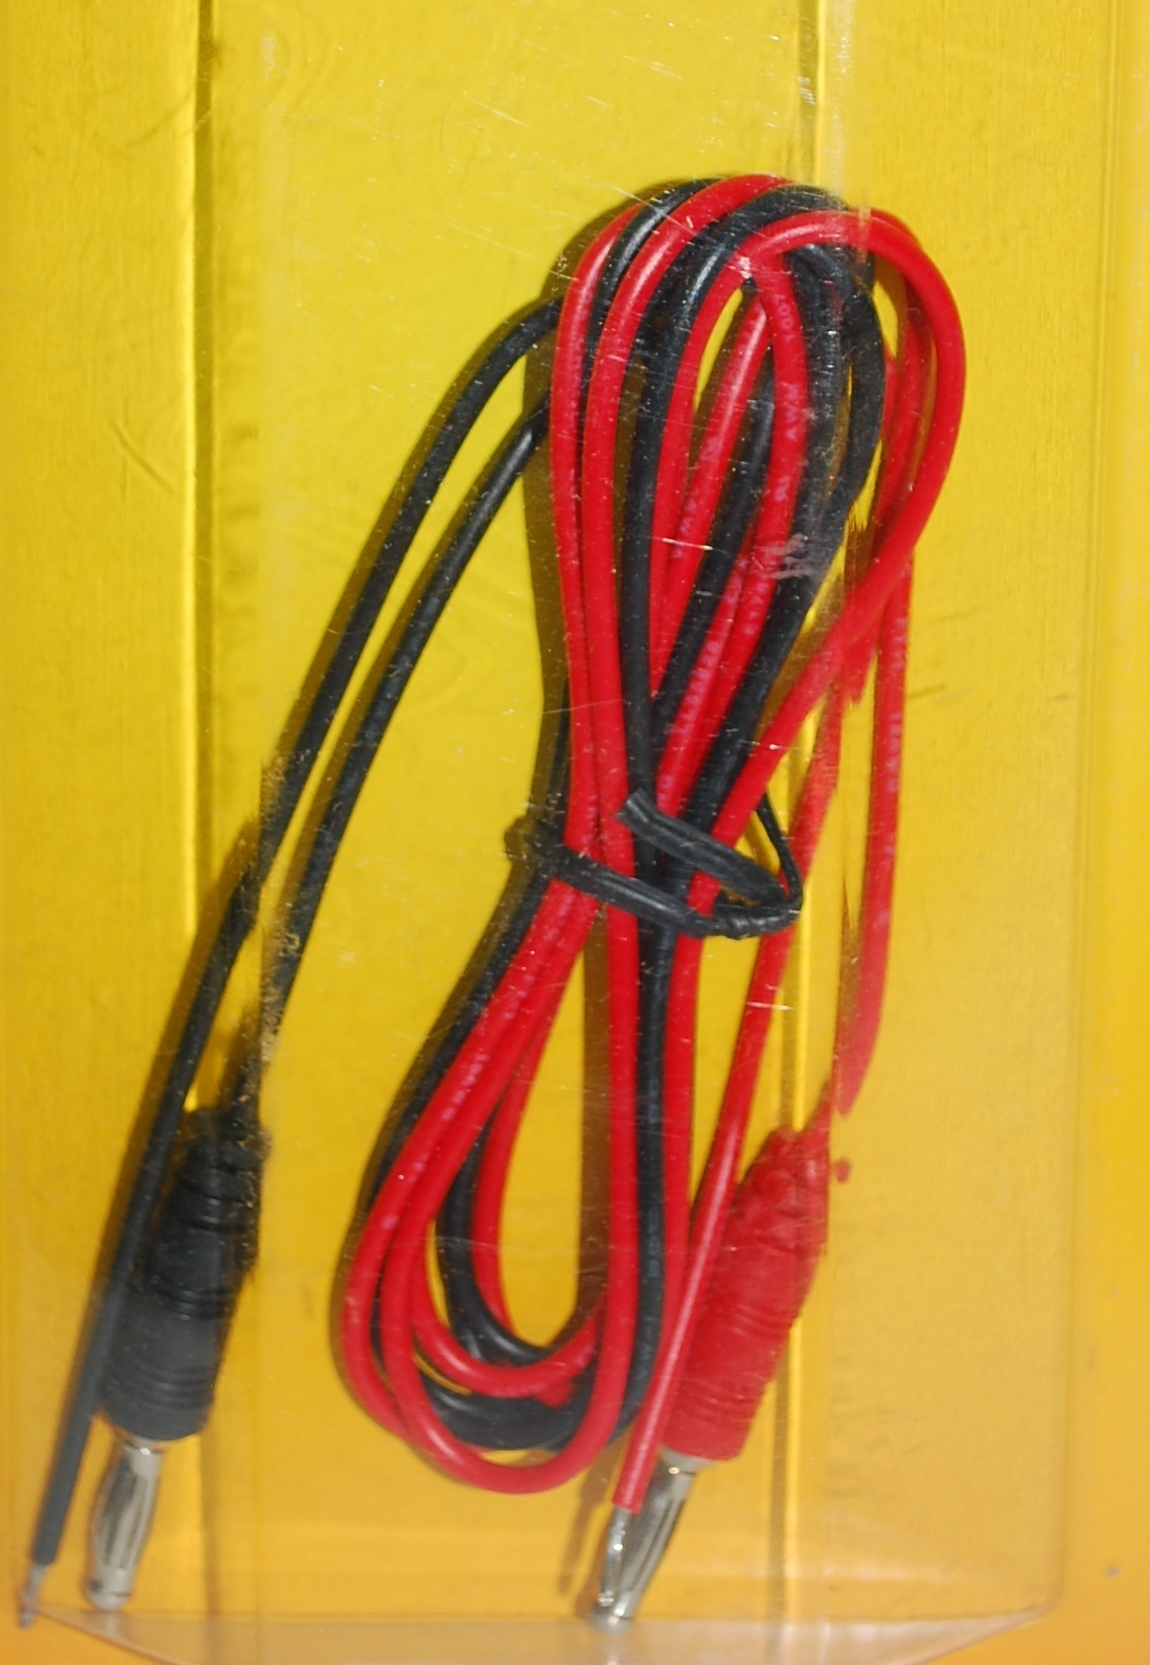 Buy Mth 10 1022 Standard Gauge Wire Harness Plugs One End On Wiring The Other